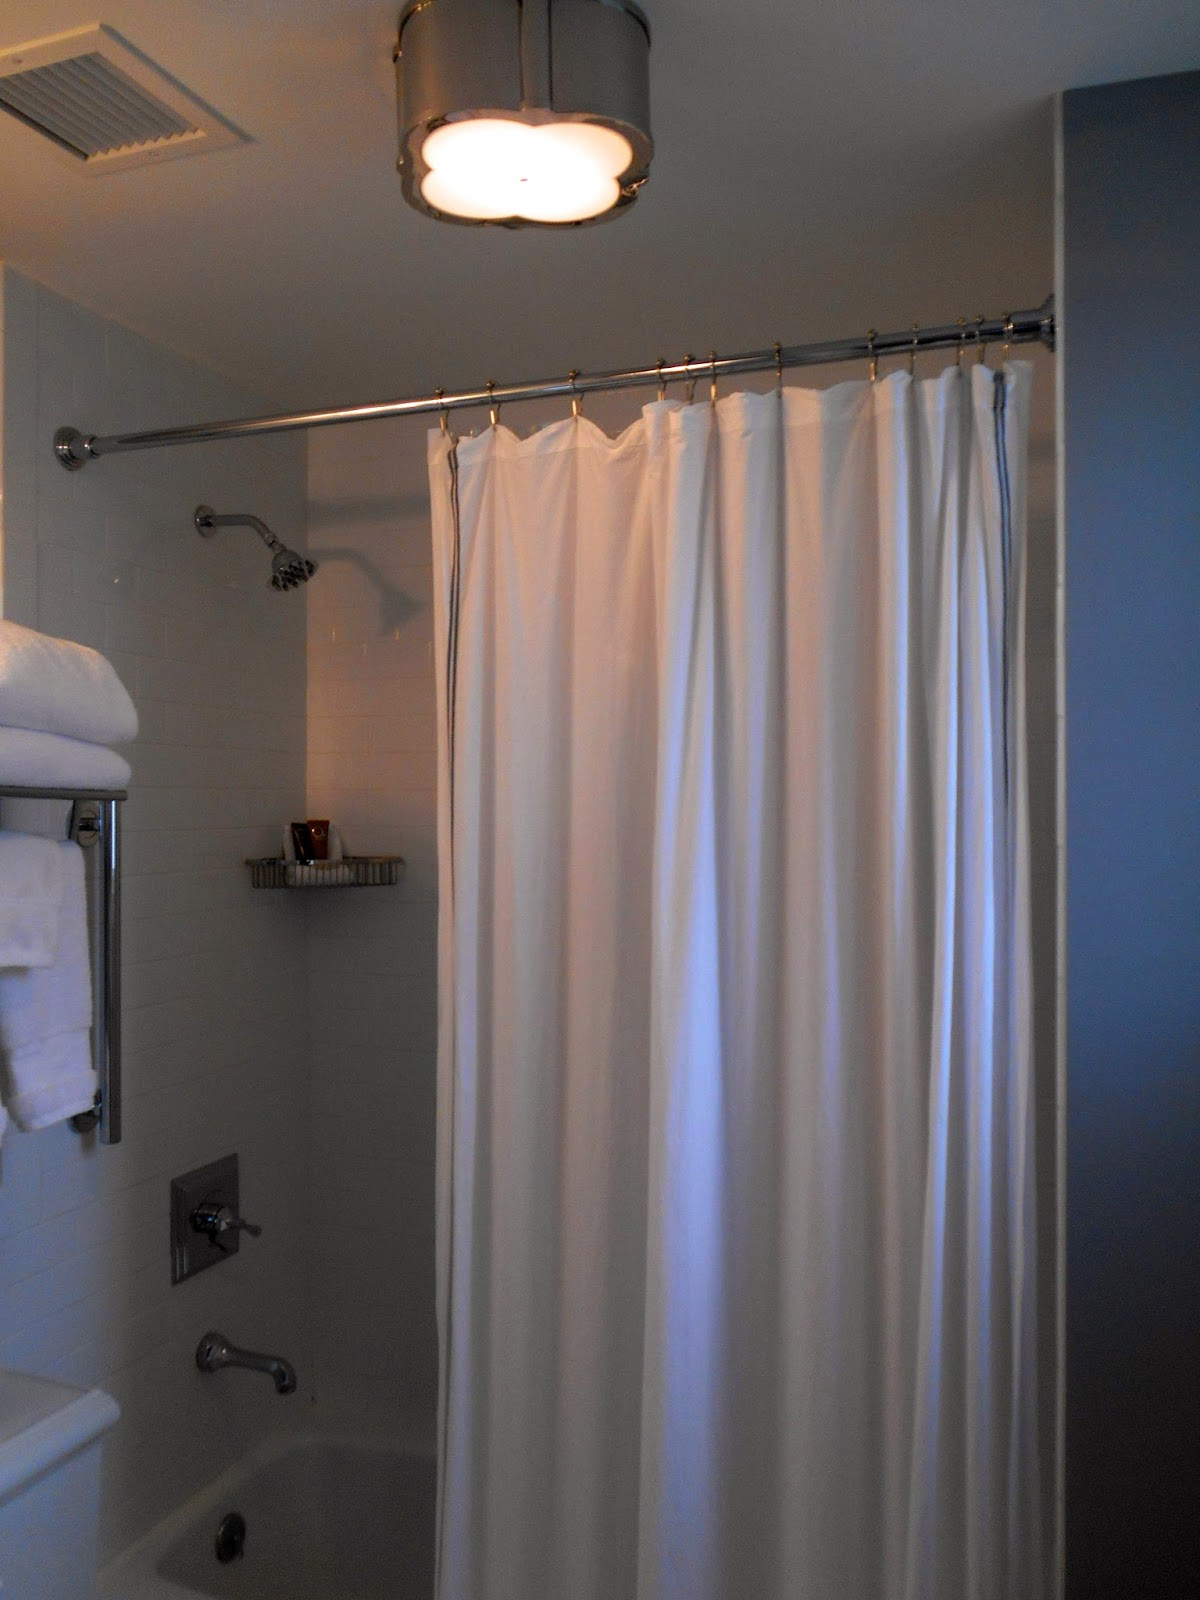 the shower curtain was cotton with thin gray striped trim